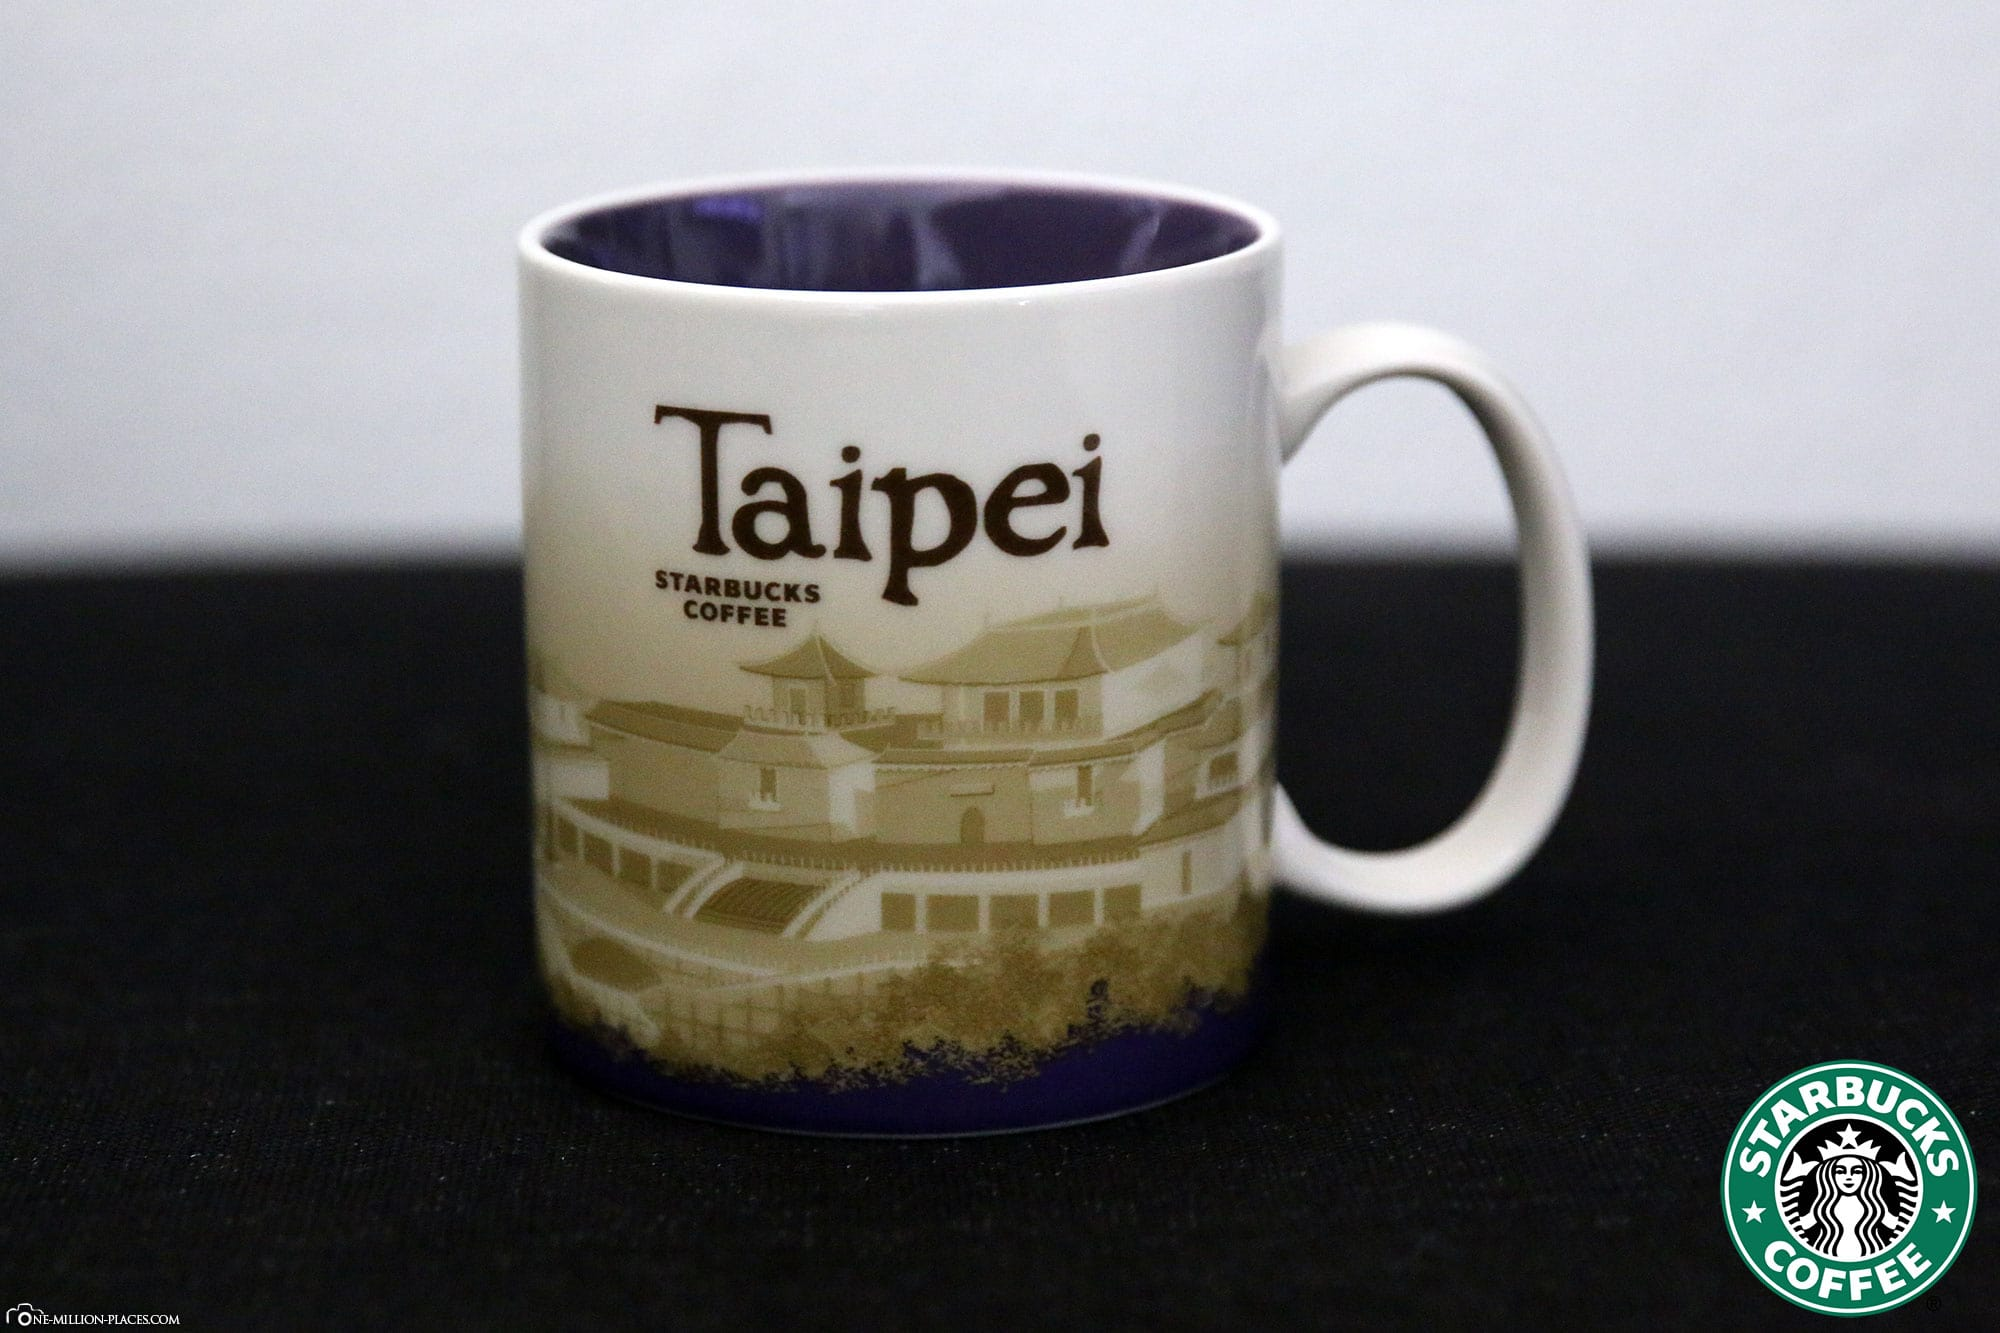 Taipei, Starbucks Cup, Global Icon Series, City Mugs, Collection, Taiwan, Travelreport